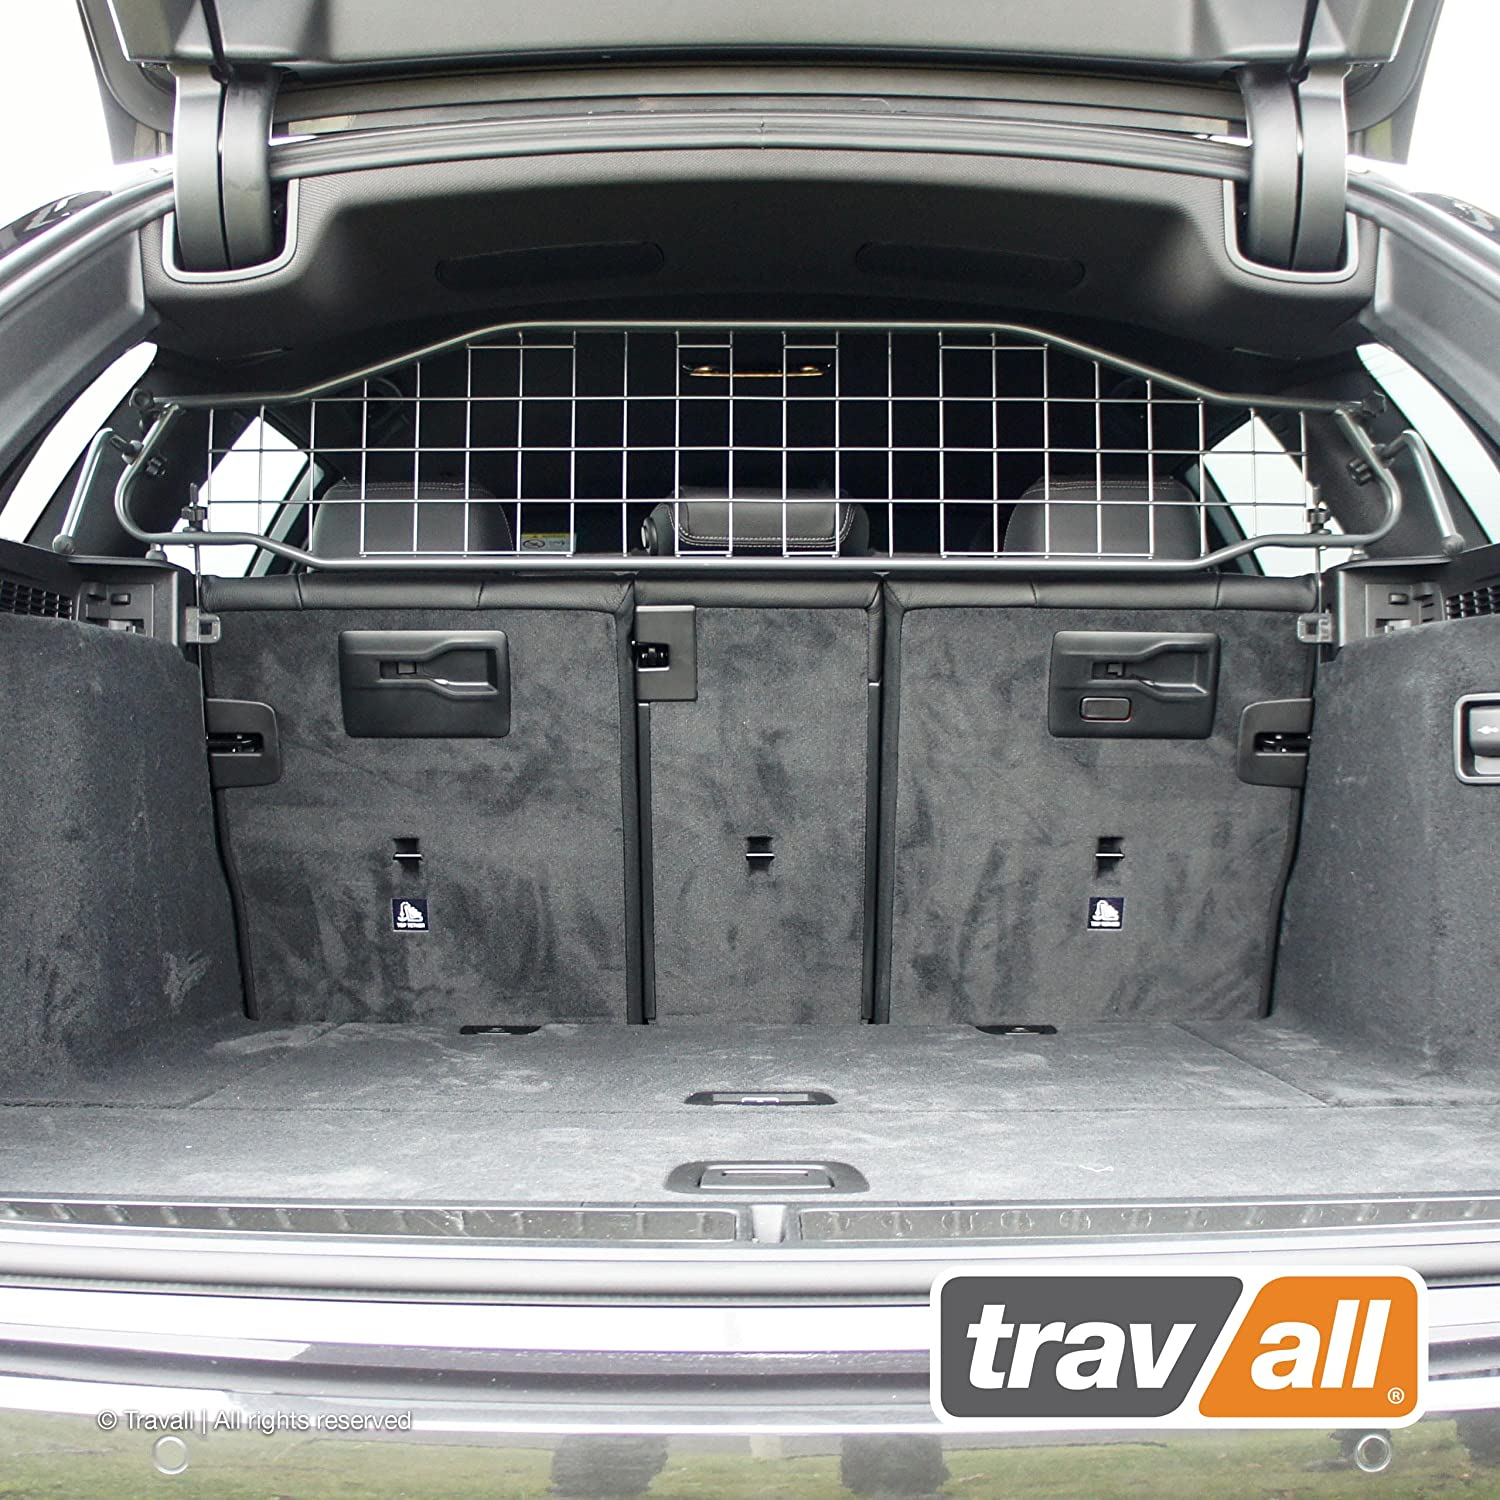 Travall Guard TDG1568 - Vehicle-Specific Dog Guard Luggage Barrier Load Separator